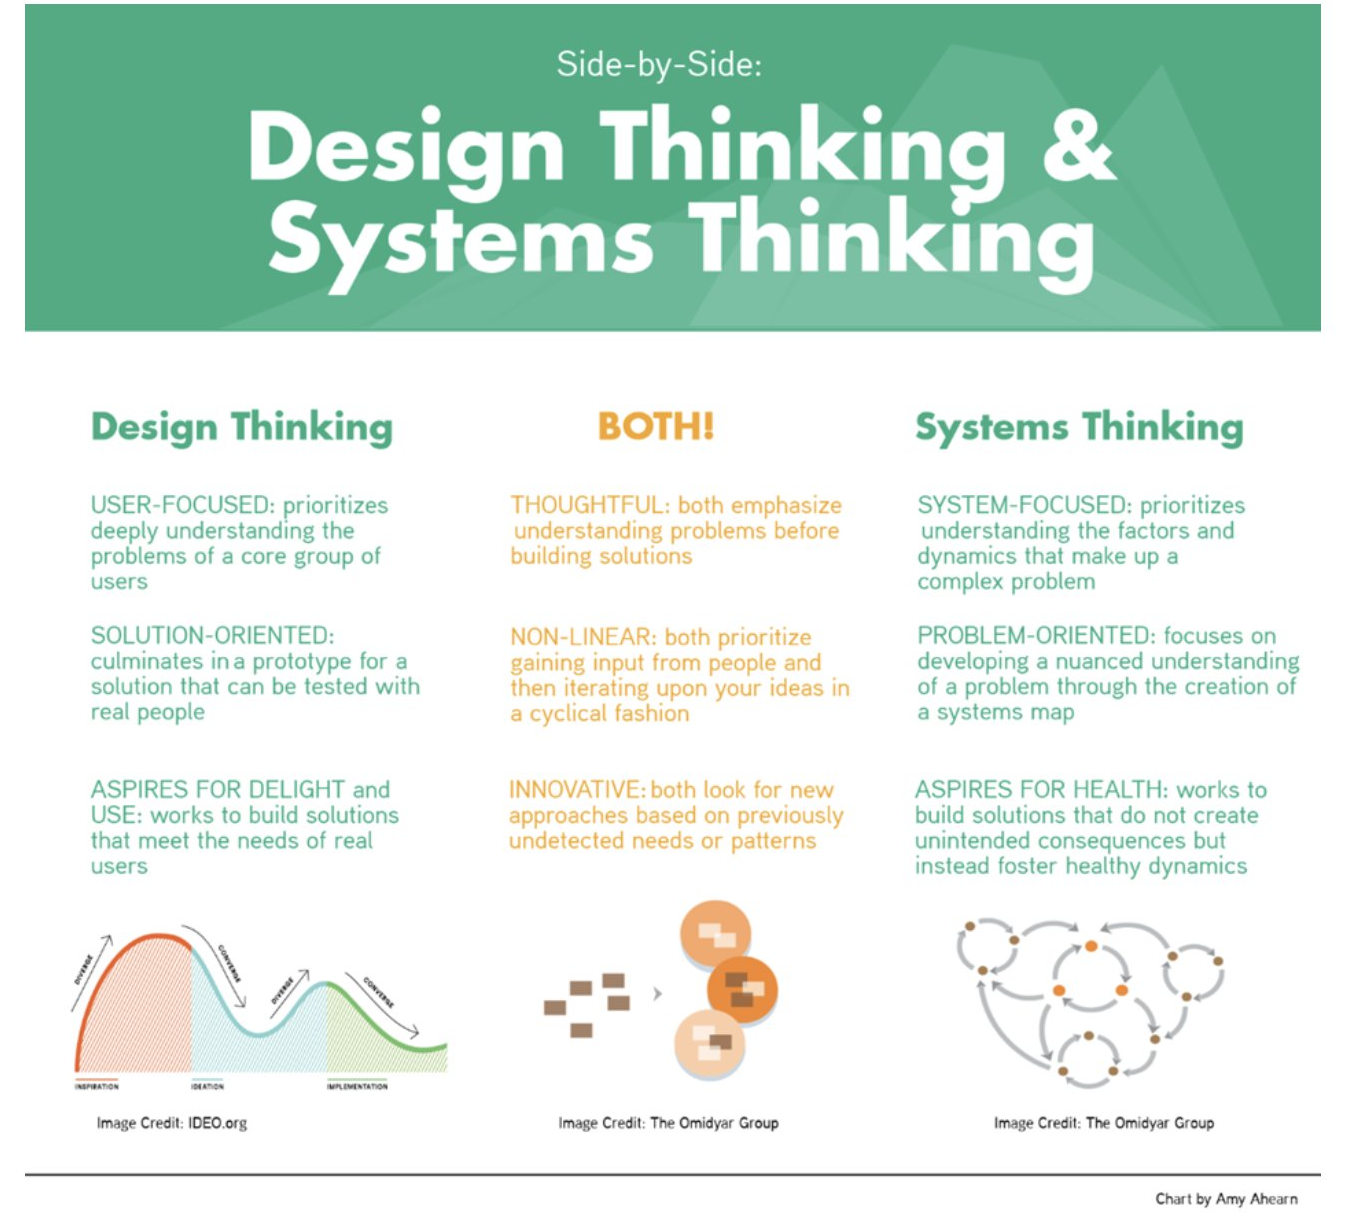 Beyond Design Thinking The Systemic Design Thinking Framework Design Thinking Process Design Thinking Tools Design Thinking